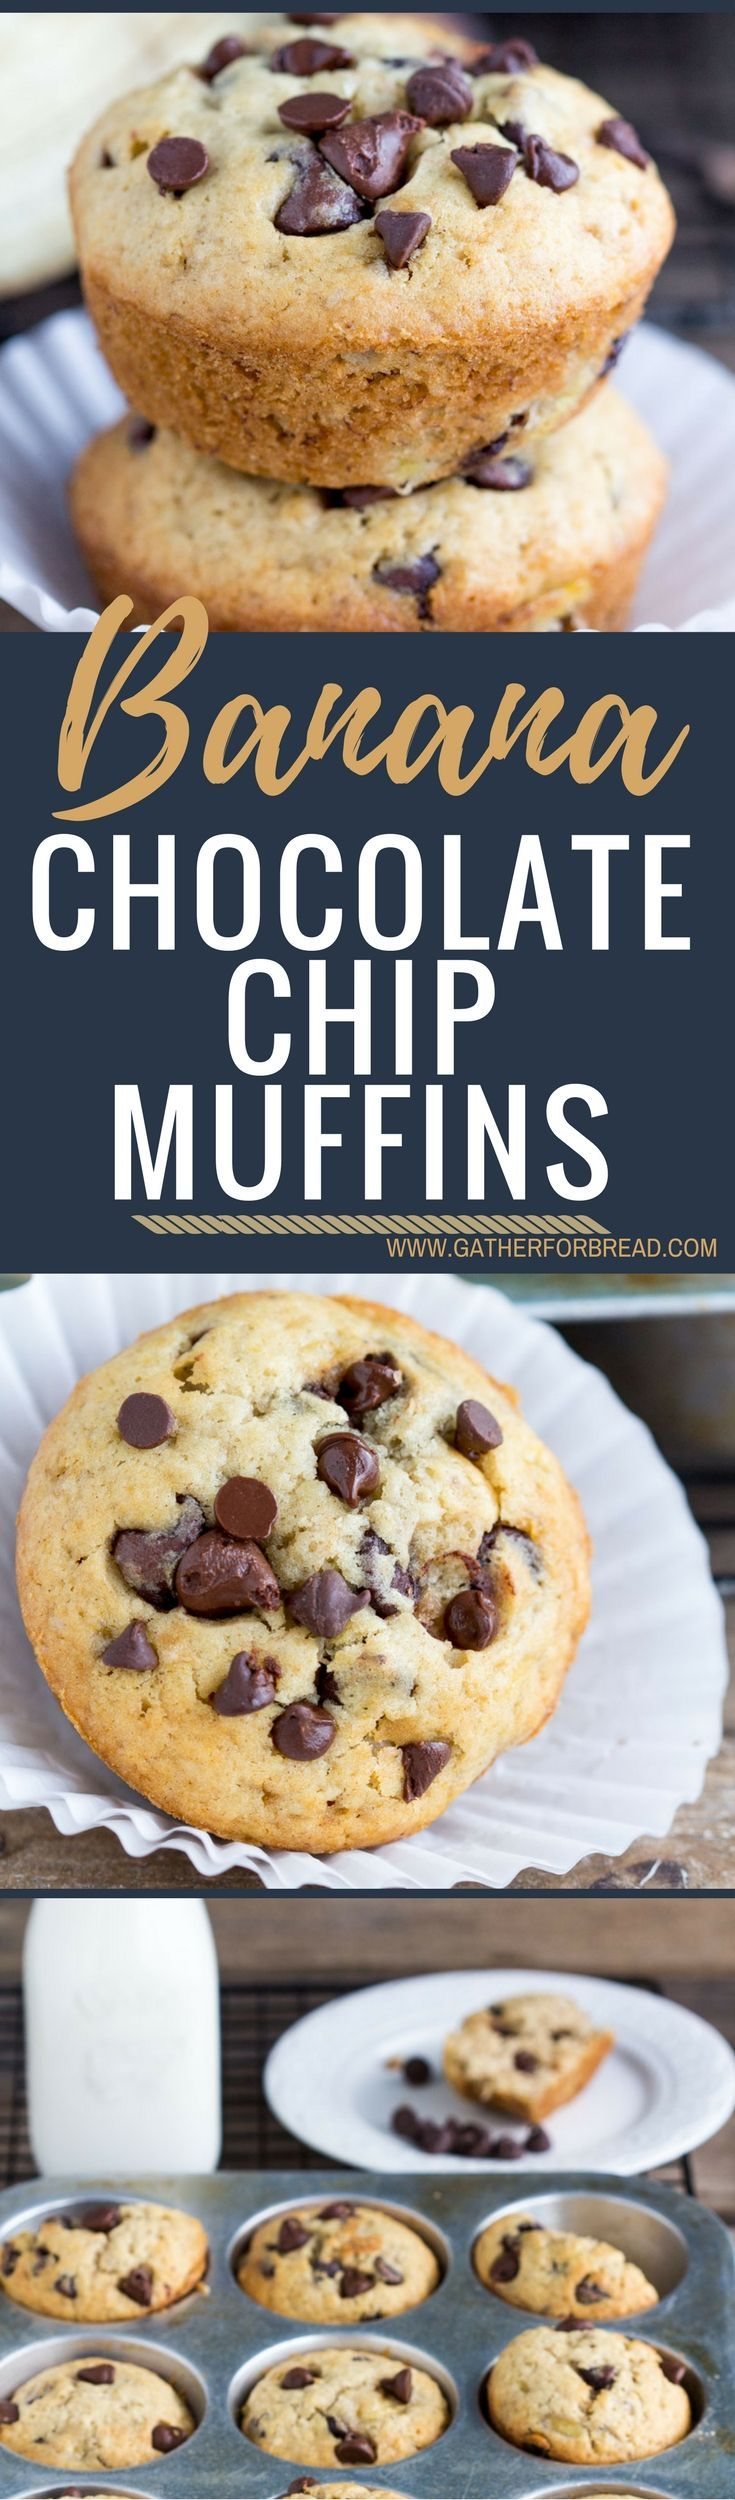 Banana Chocolate Chip muffins - Bakery style Homemade muffins. Perfect for breakfast or snack. These are a family FAVORITE! (Chocolate Chip Banana)